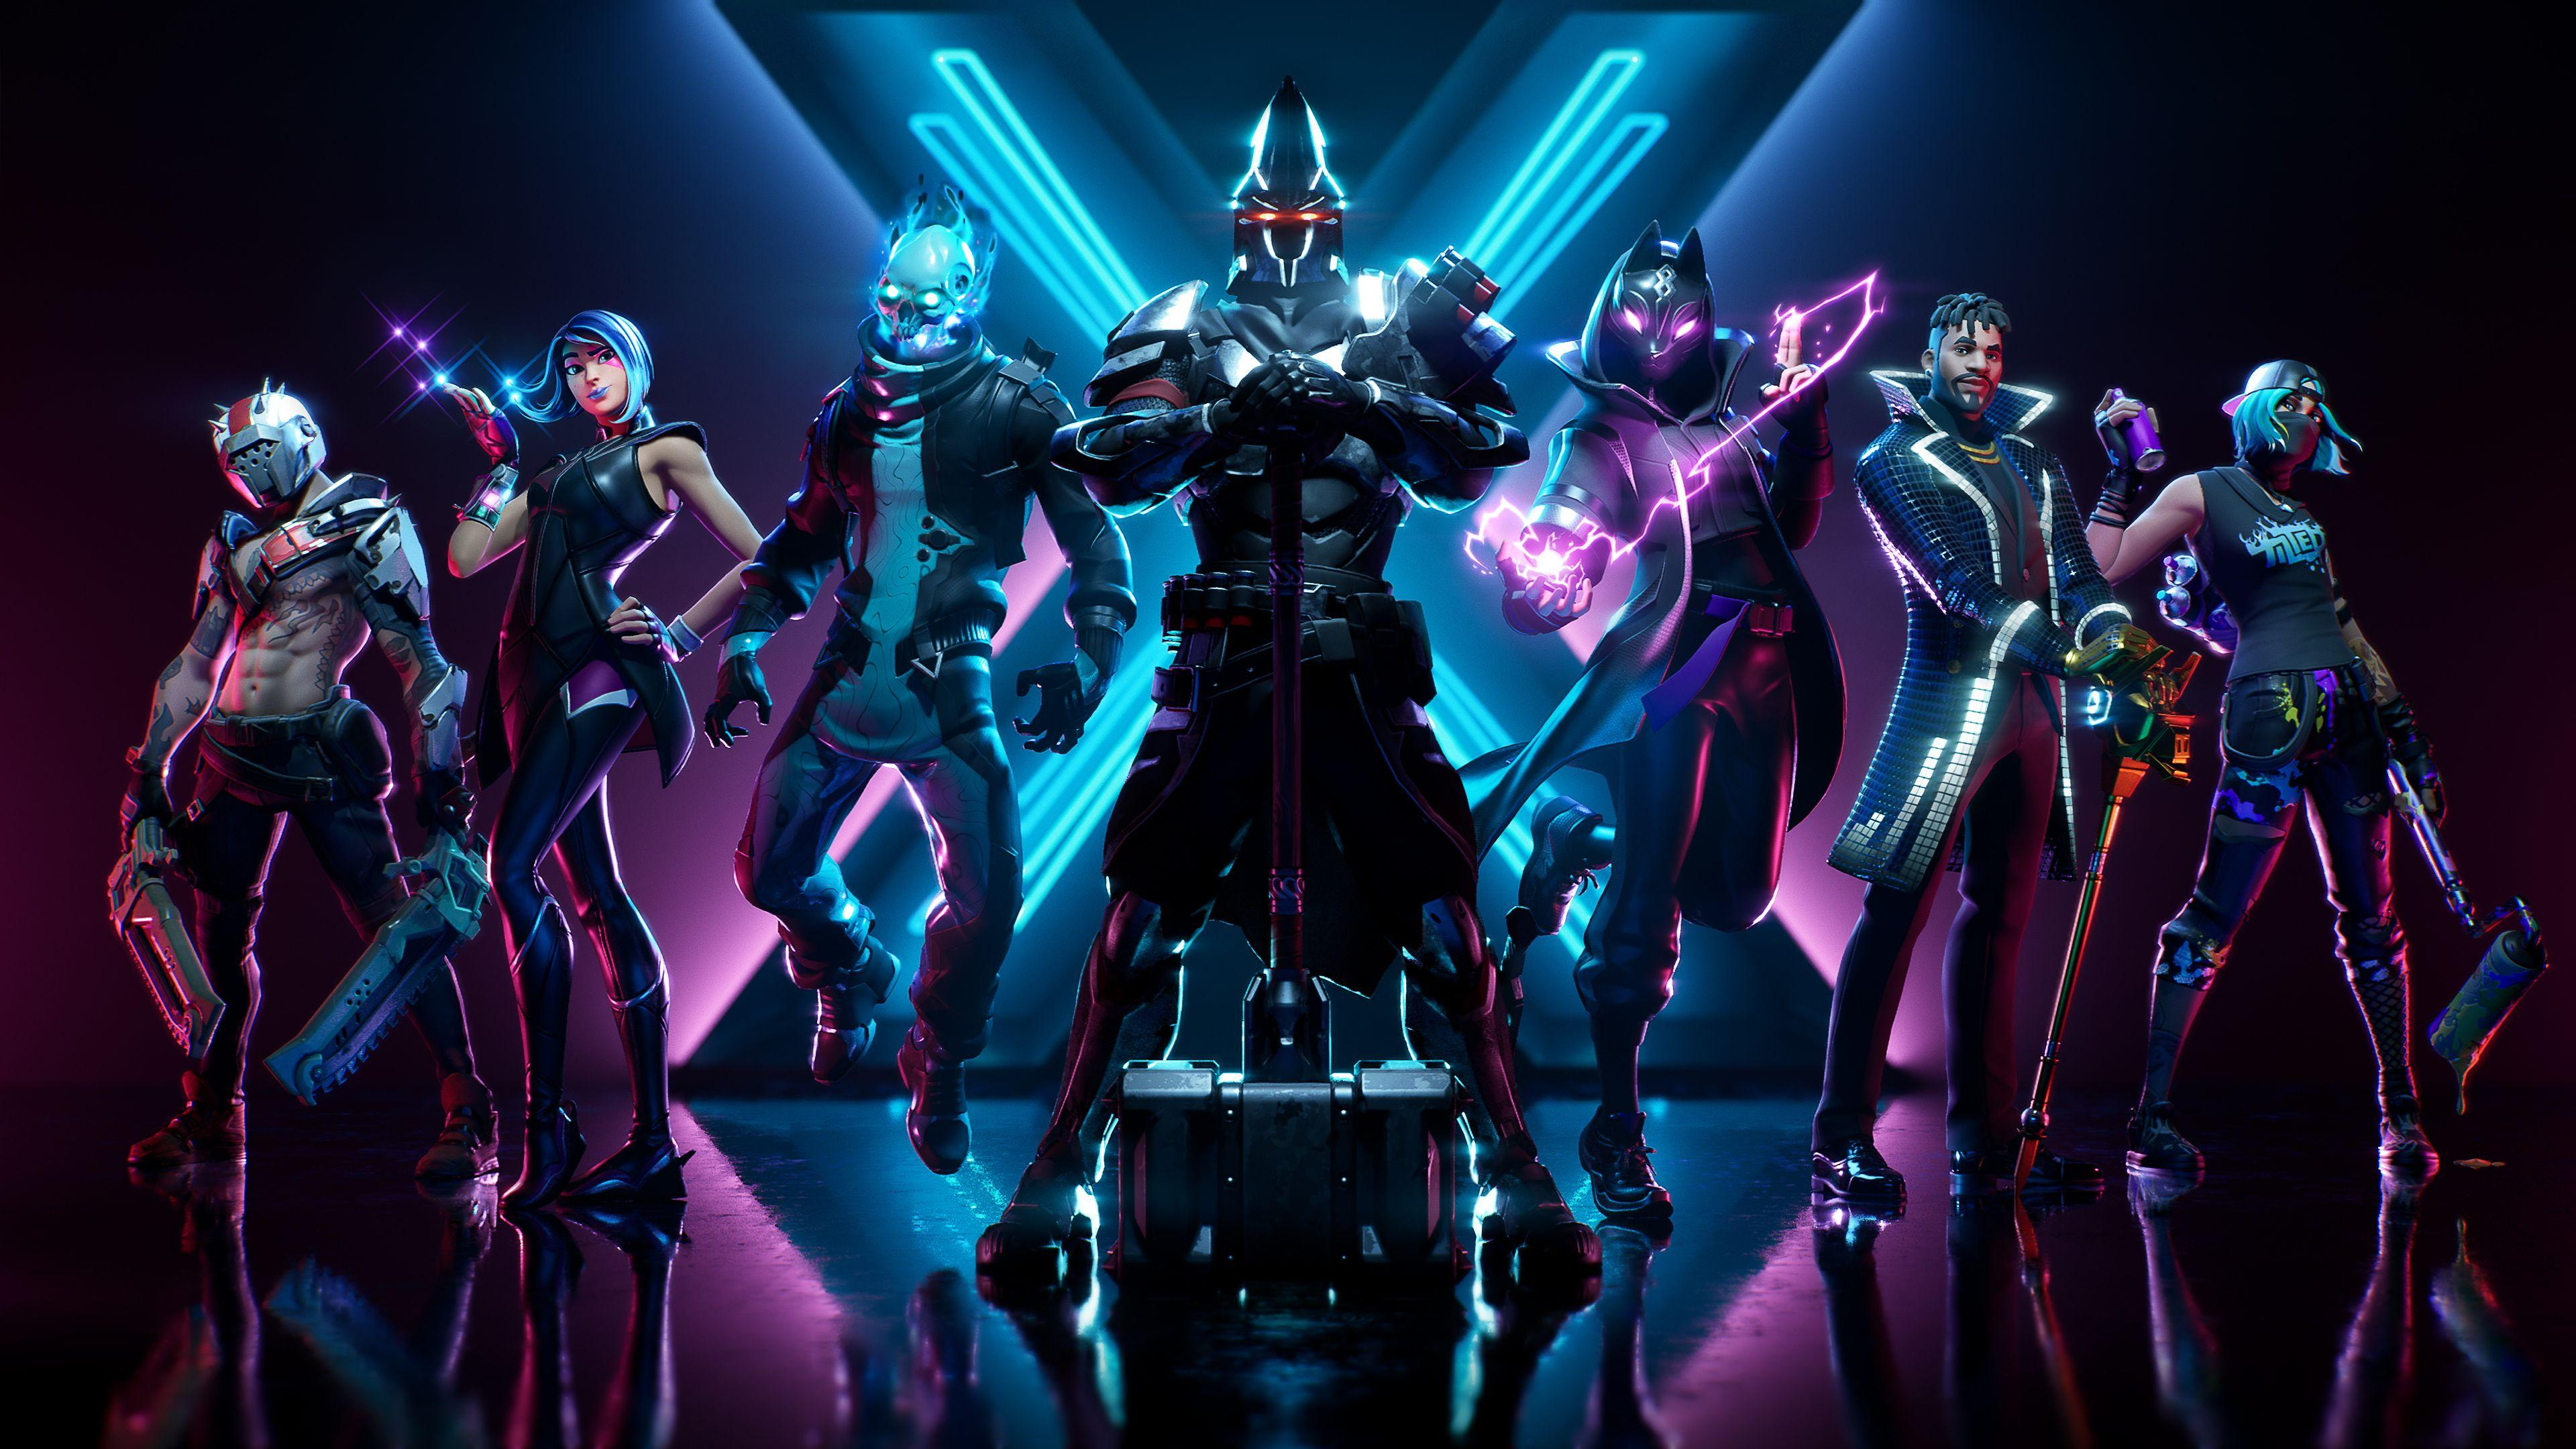 Fortnite 2020 Wallpapers Wallpaper Cave Wallpaper cart offers the latest collection of fortnite wallpapers and background images. fortnite 2020 wallpapers wallpaper cave